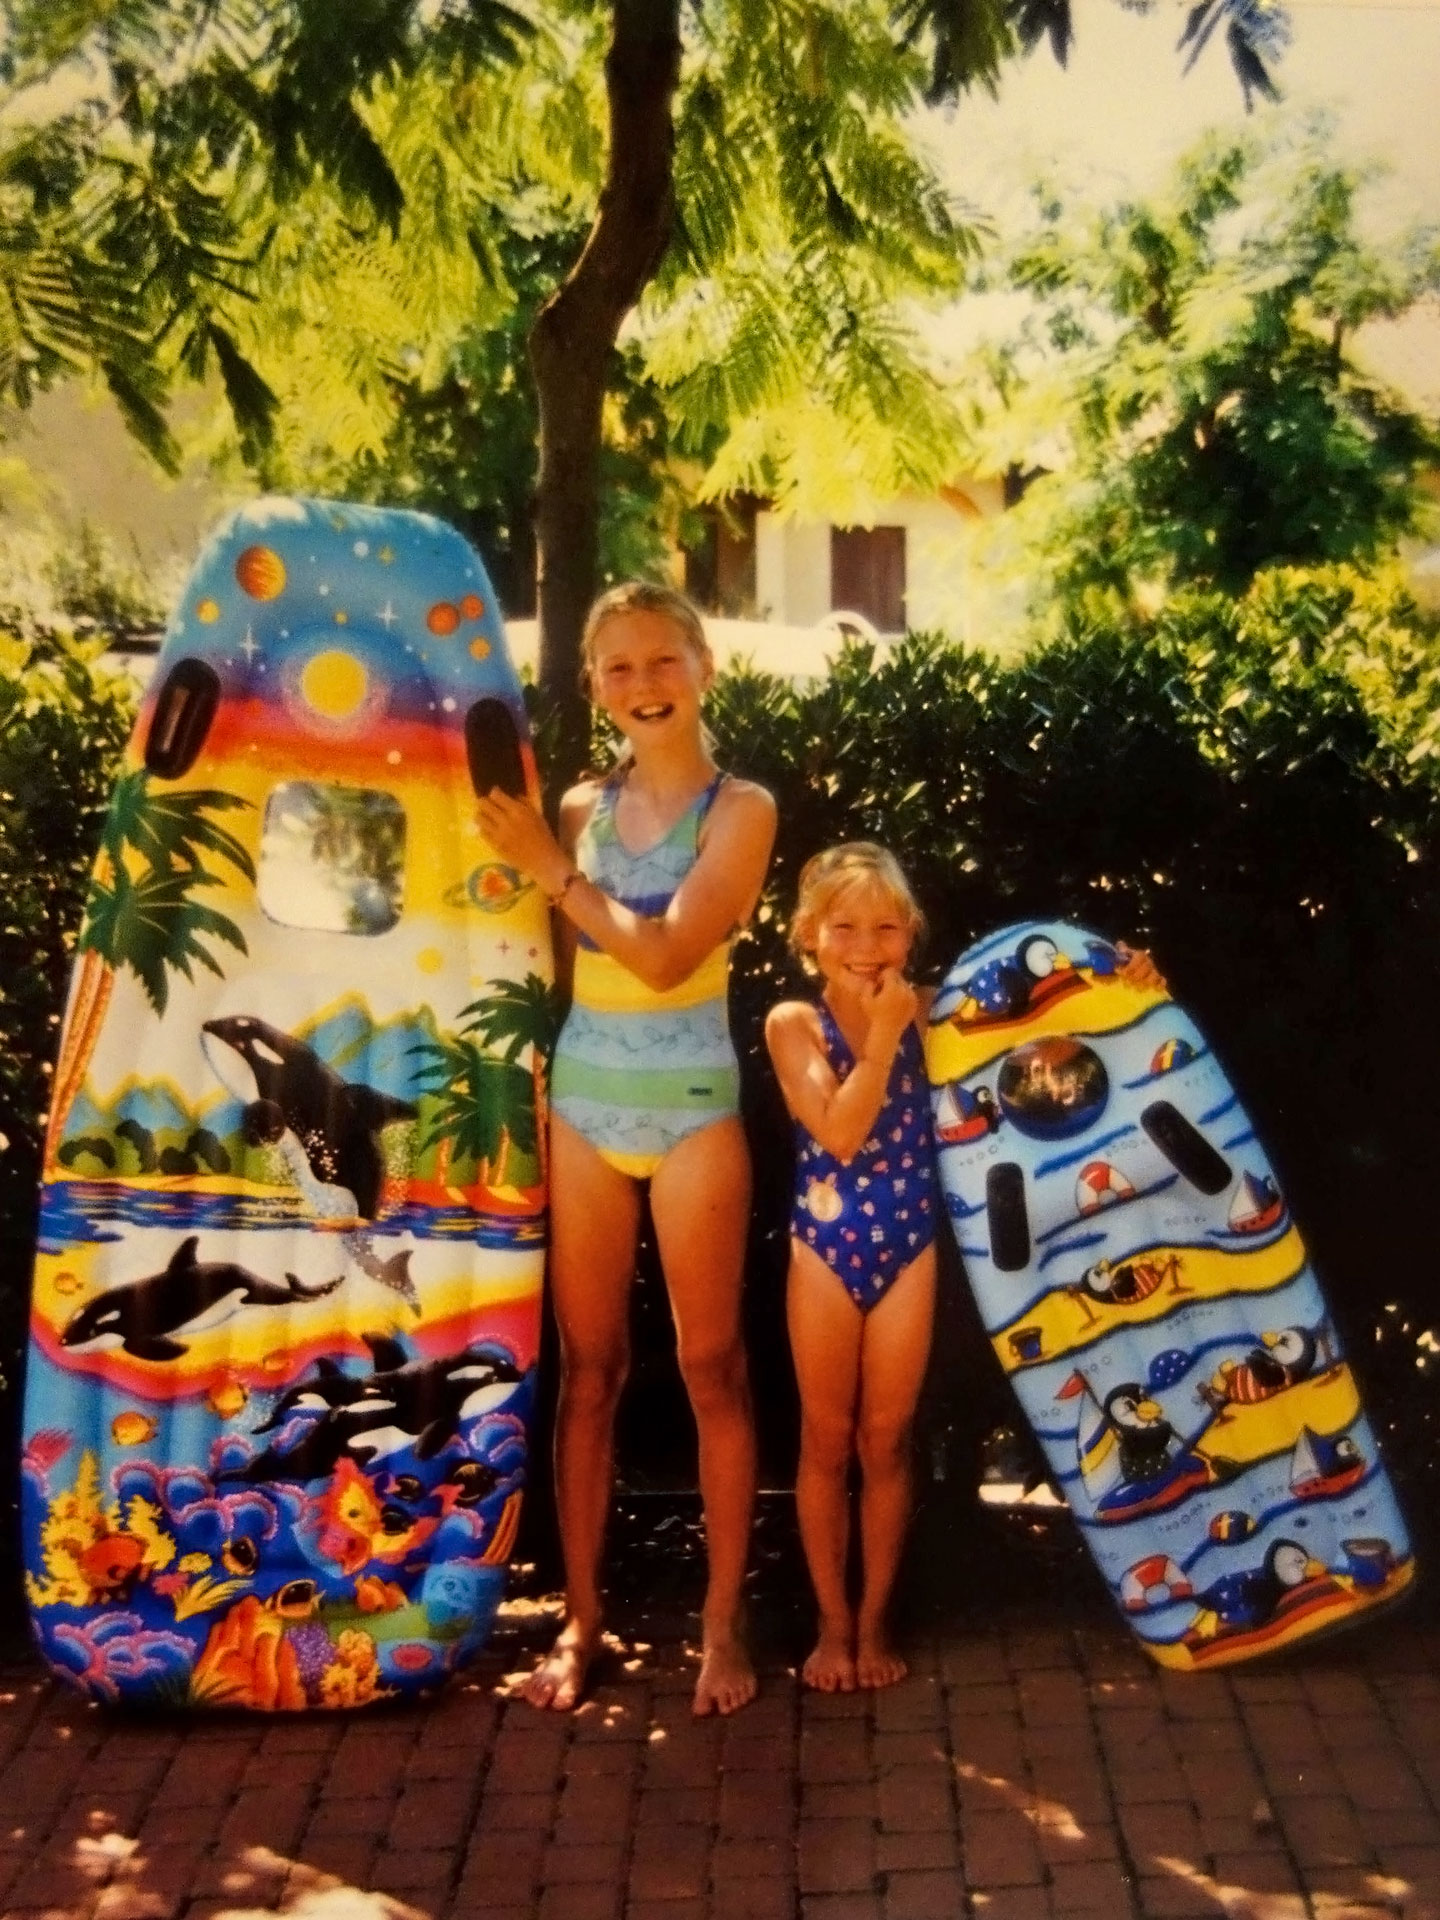 Old picture of sisters with their colorful floating mattresses